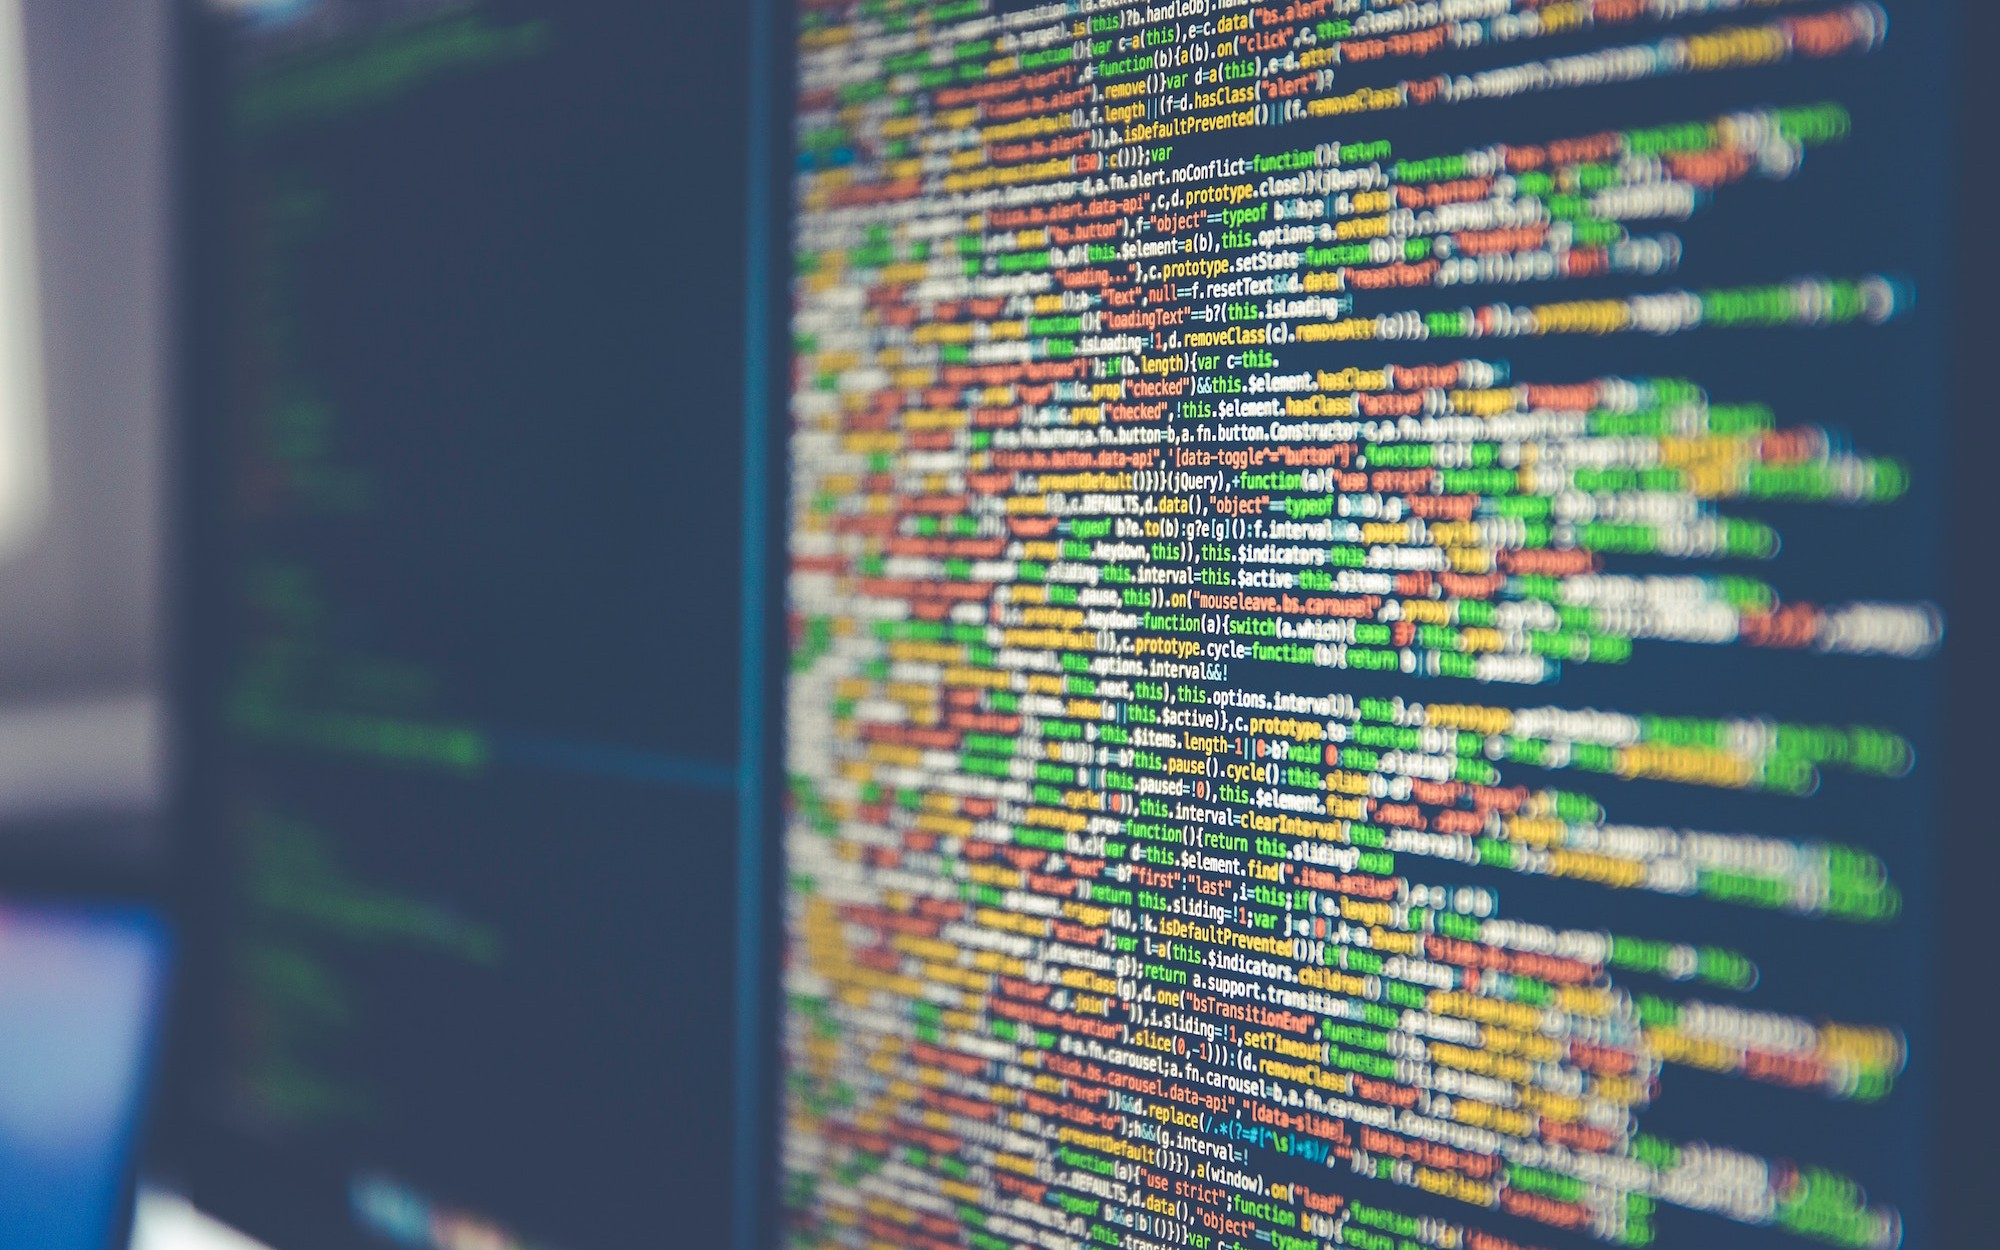 8 Machine Learning JavaScript Frameworks to Explore - DZone AI